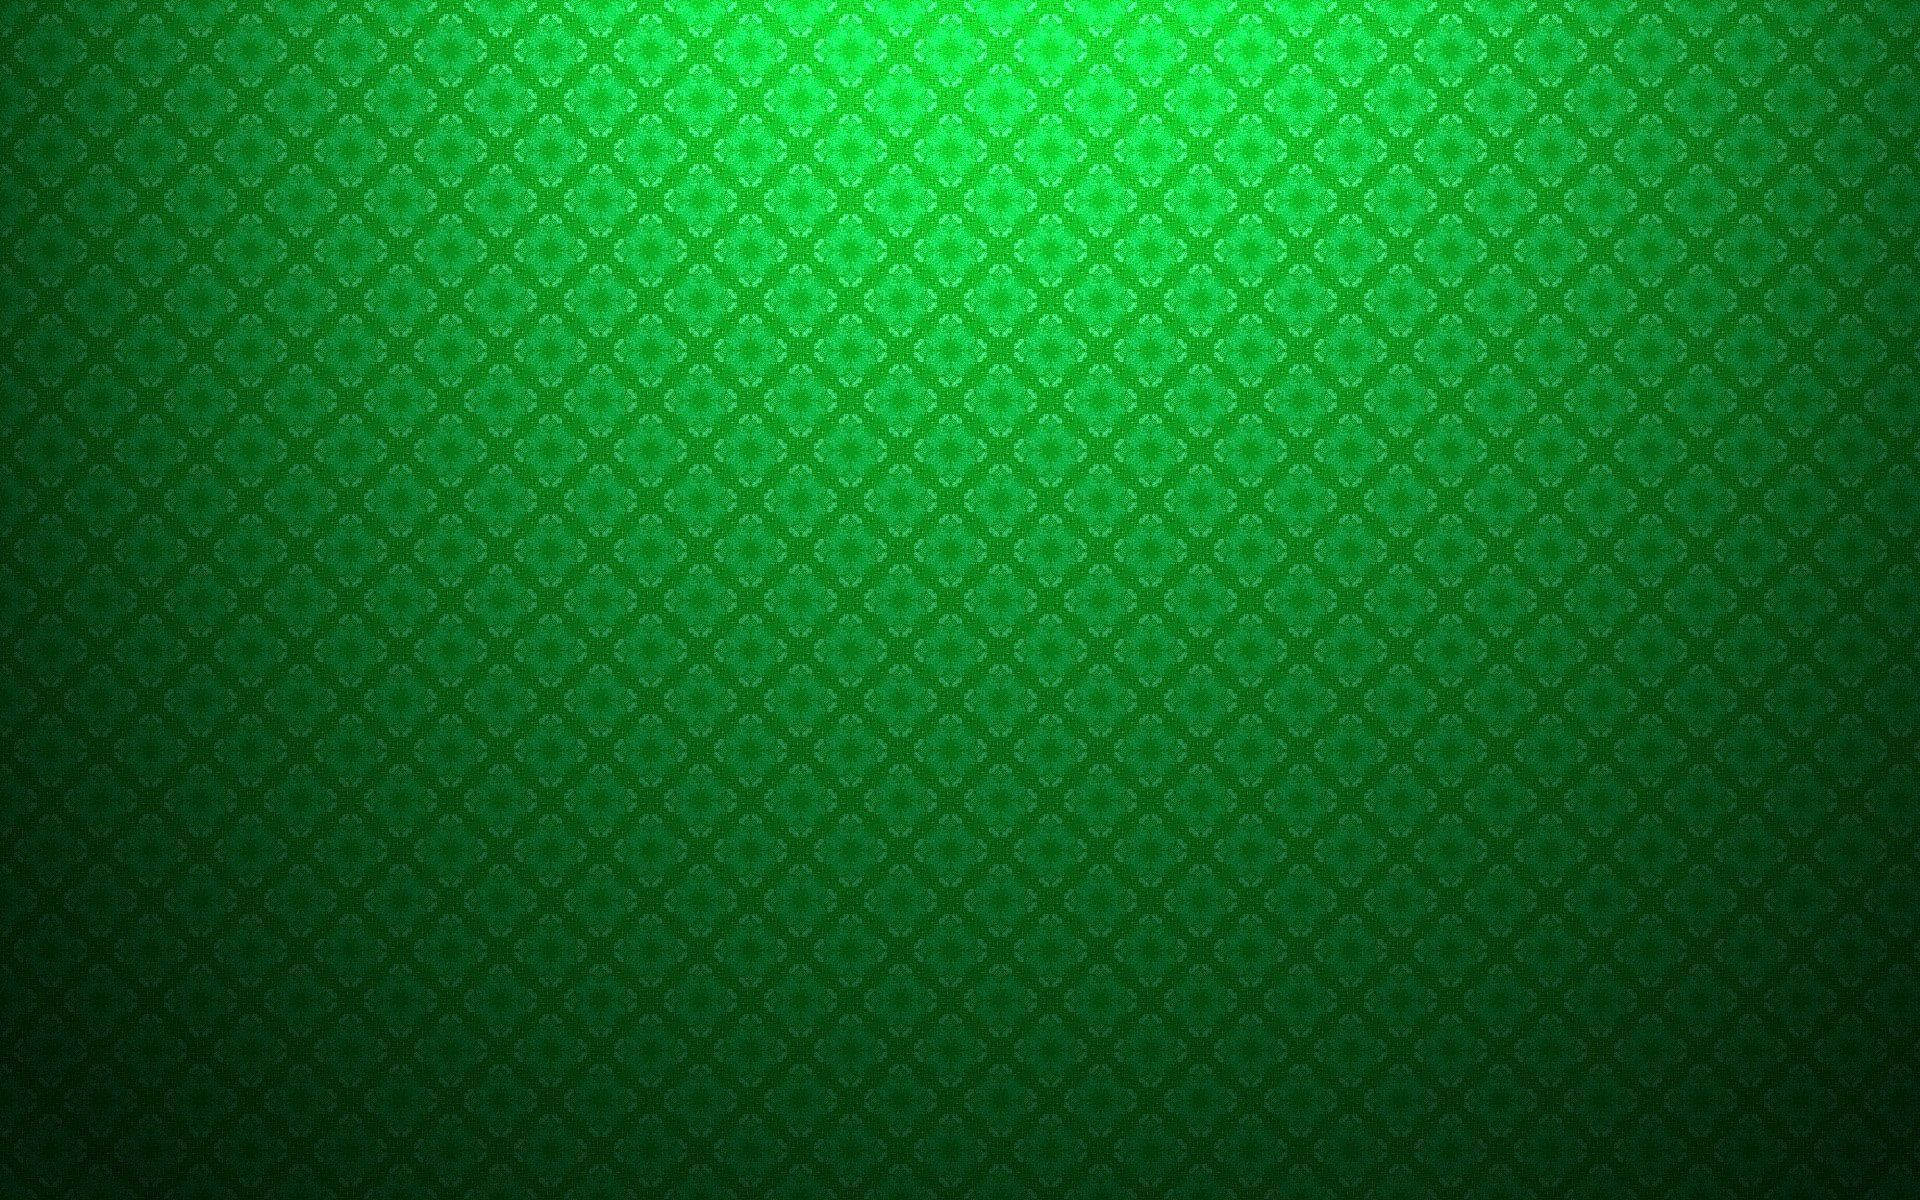 Green Background 10 - [1920x1200]